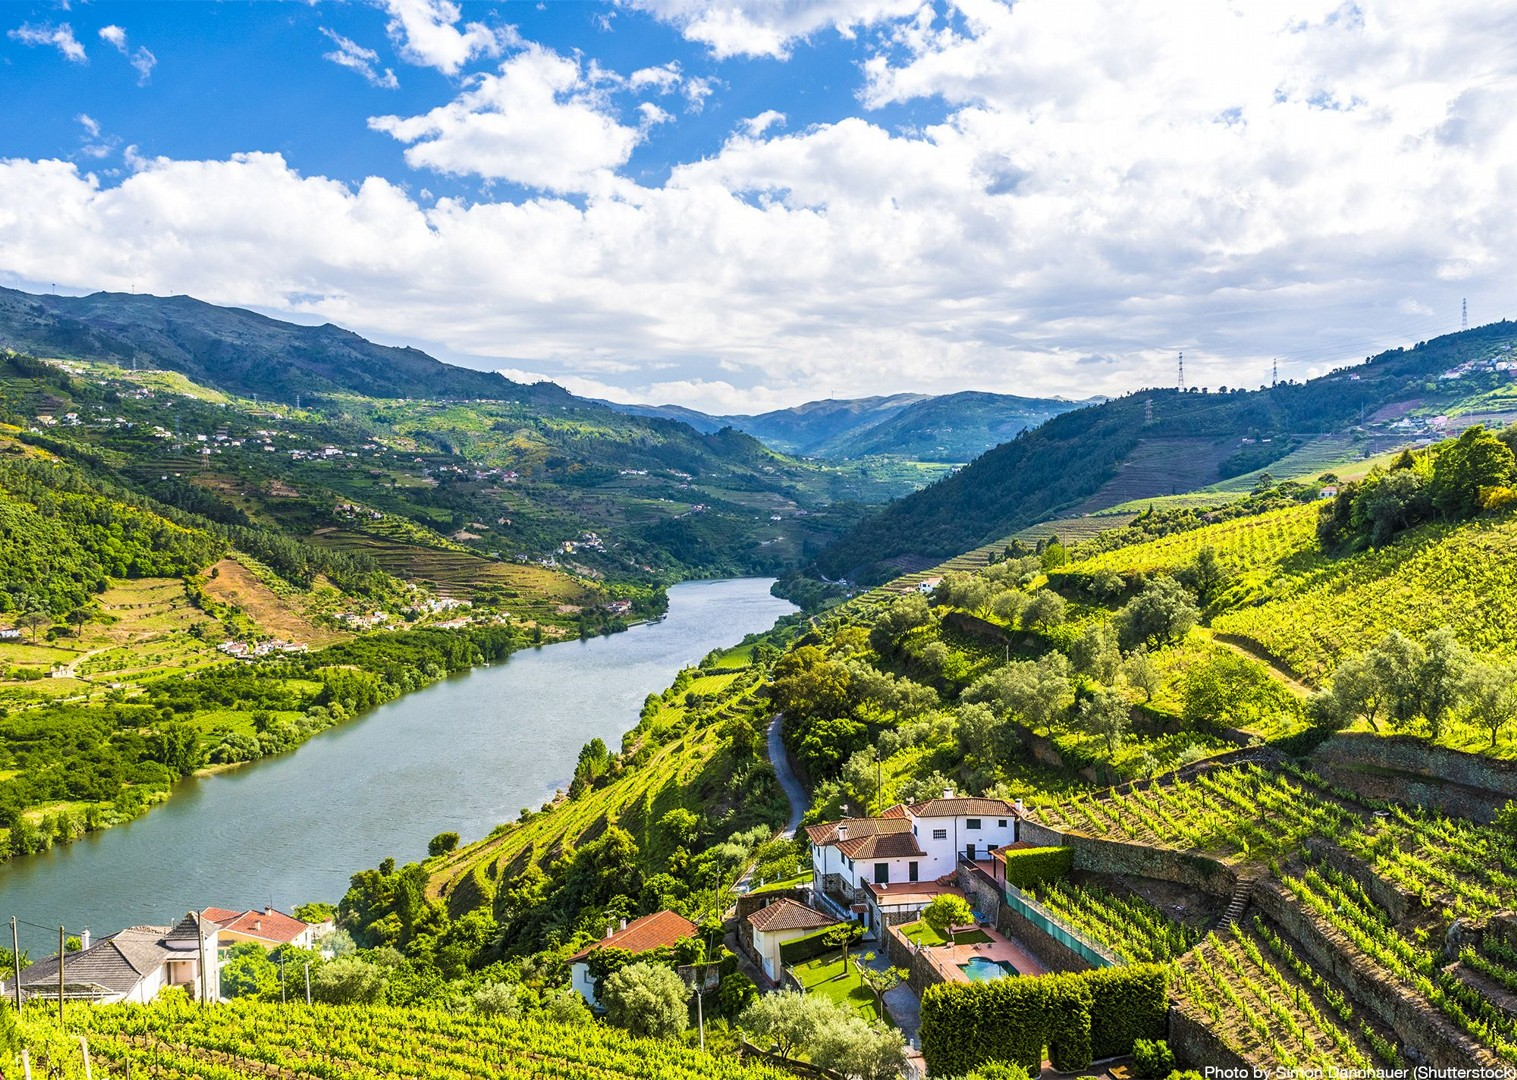 douro-valley-self-guided-fun-maps-views-leisure-portugal-cycling.jpg - Portugal - Port and Wine - Self Guided Leisure Cycling Holiday - Leisure Cycling